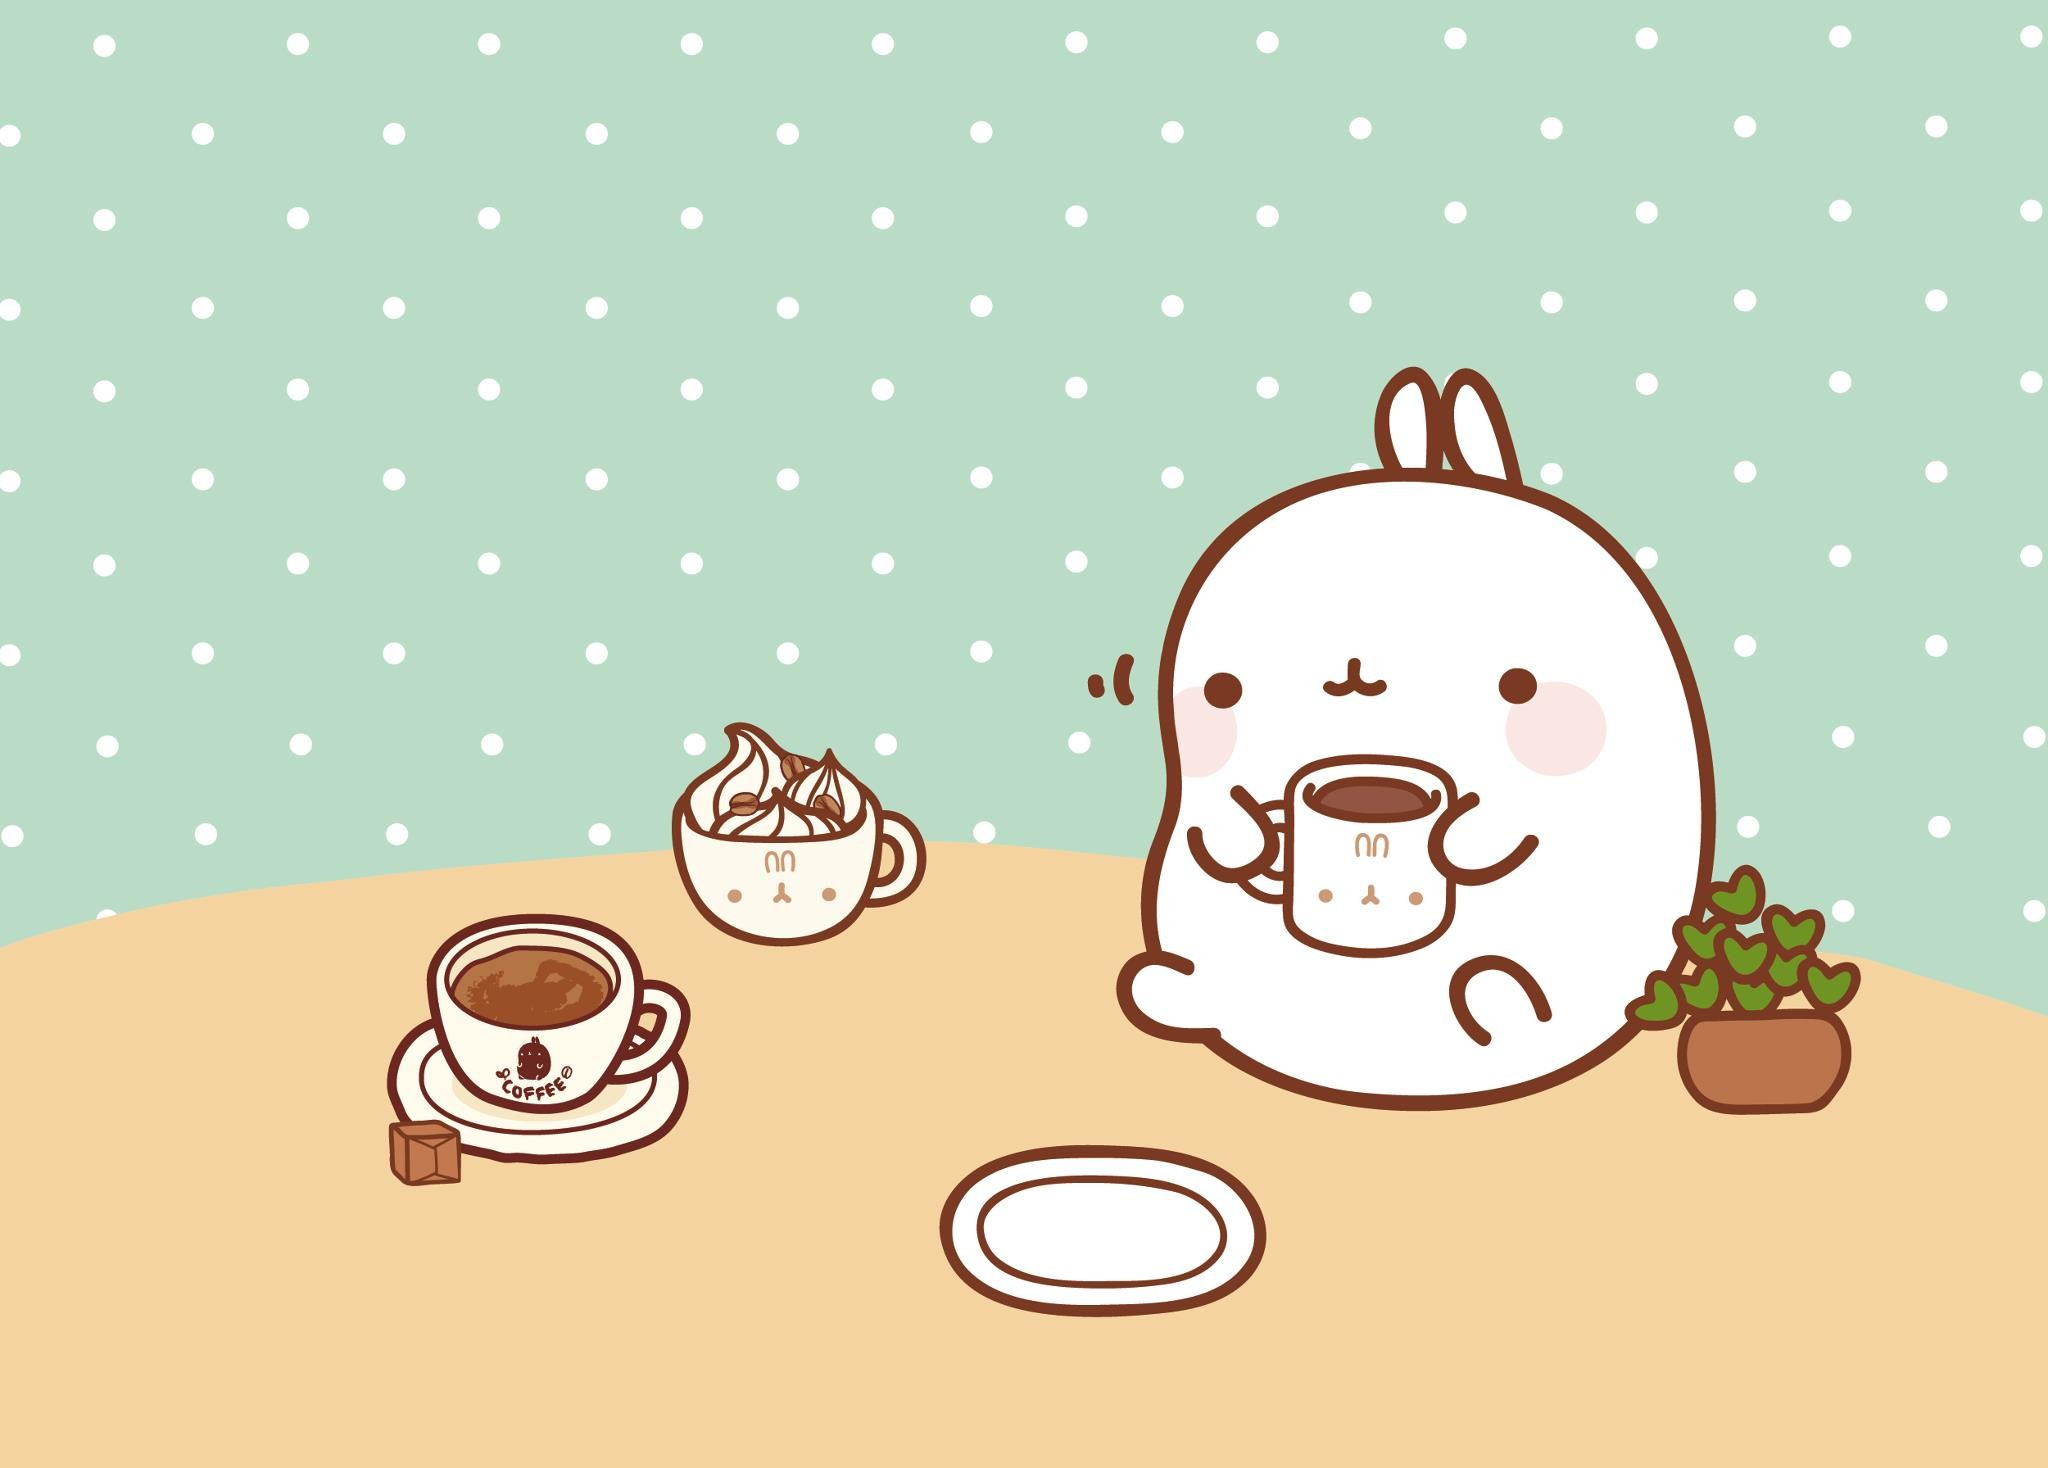 Cute Wallpapers For Iphone 5s Pusheen Wallpaper For Computer 68 Images